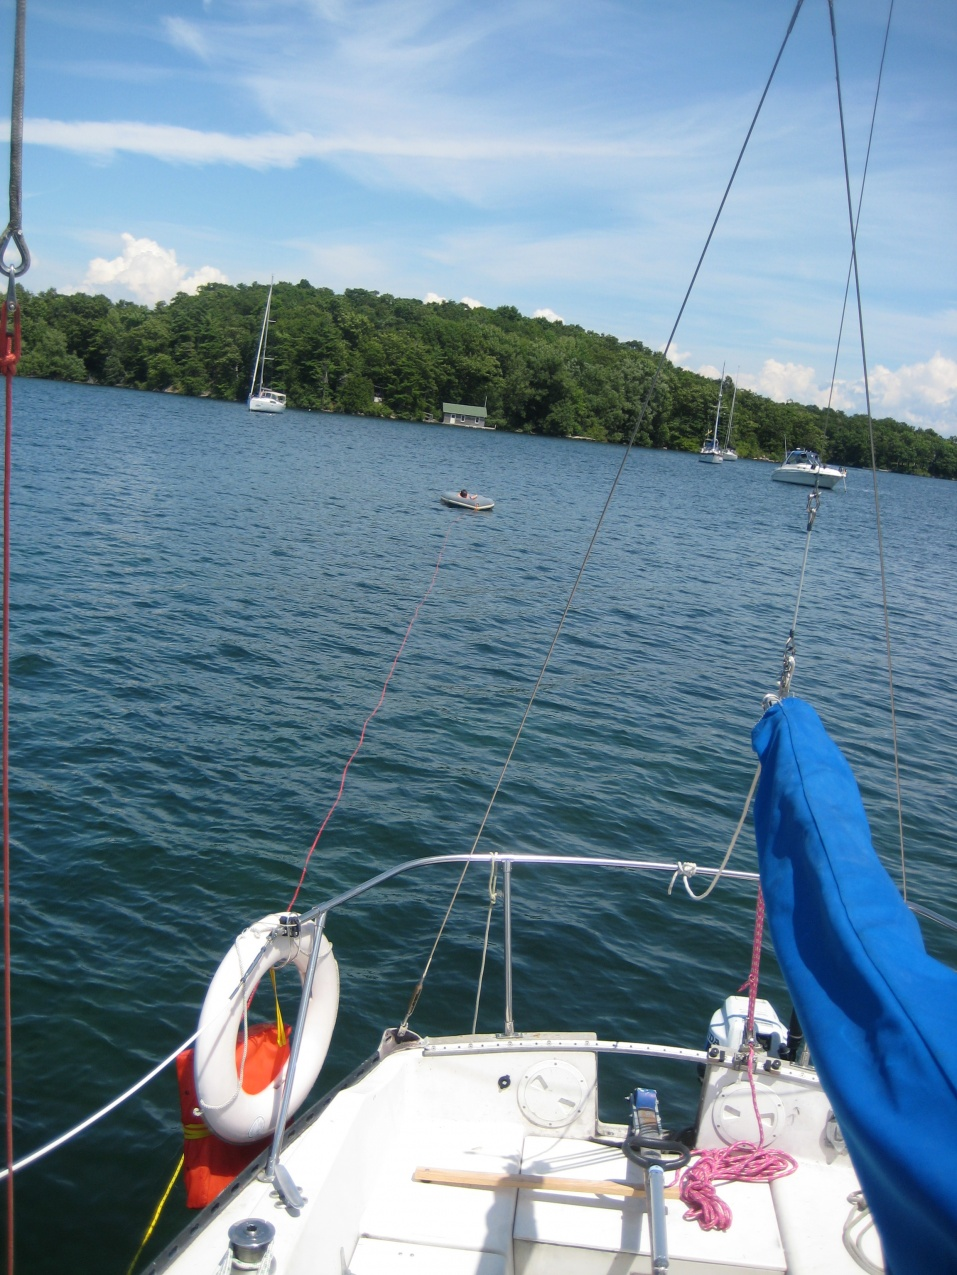 Click image for larger version  Name:Sailing 124.jpg Views:99 Size:424.5 KB ID:111041